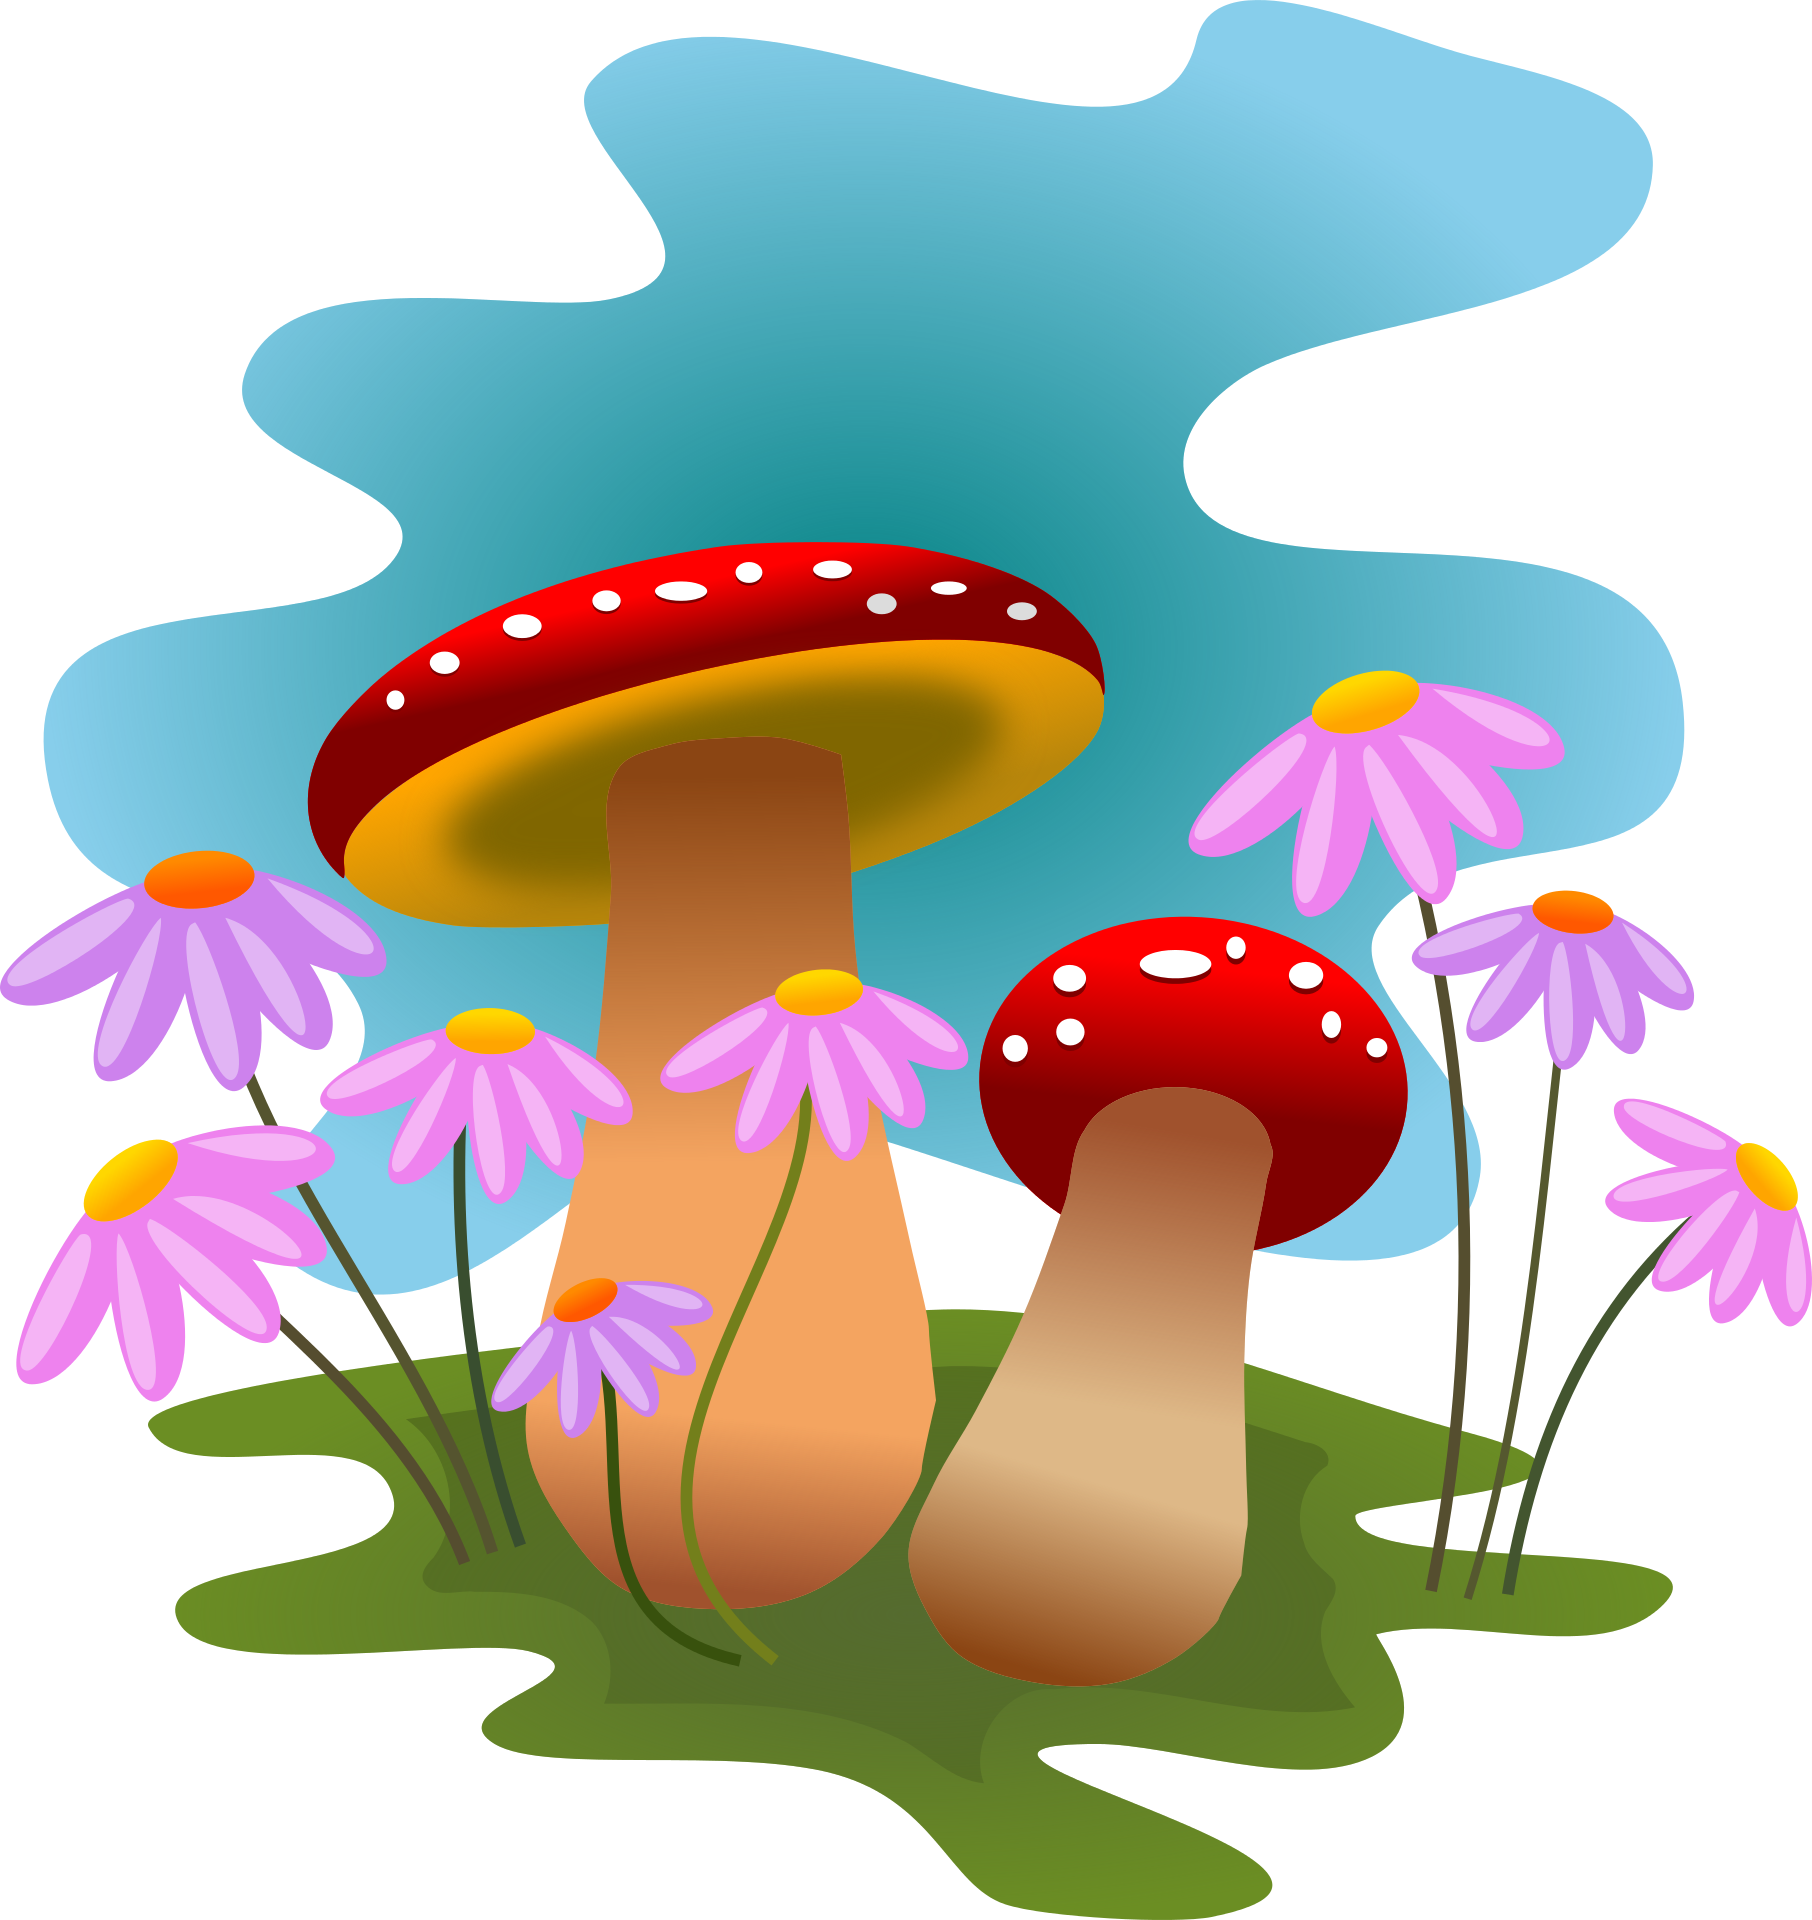 1812x1920 Mushrooms And Flowers Clipart 1812x1920 Clip Art Everyday